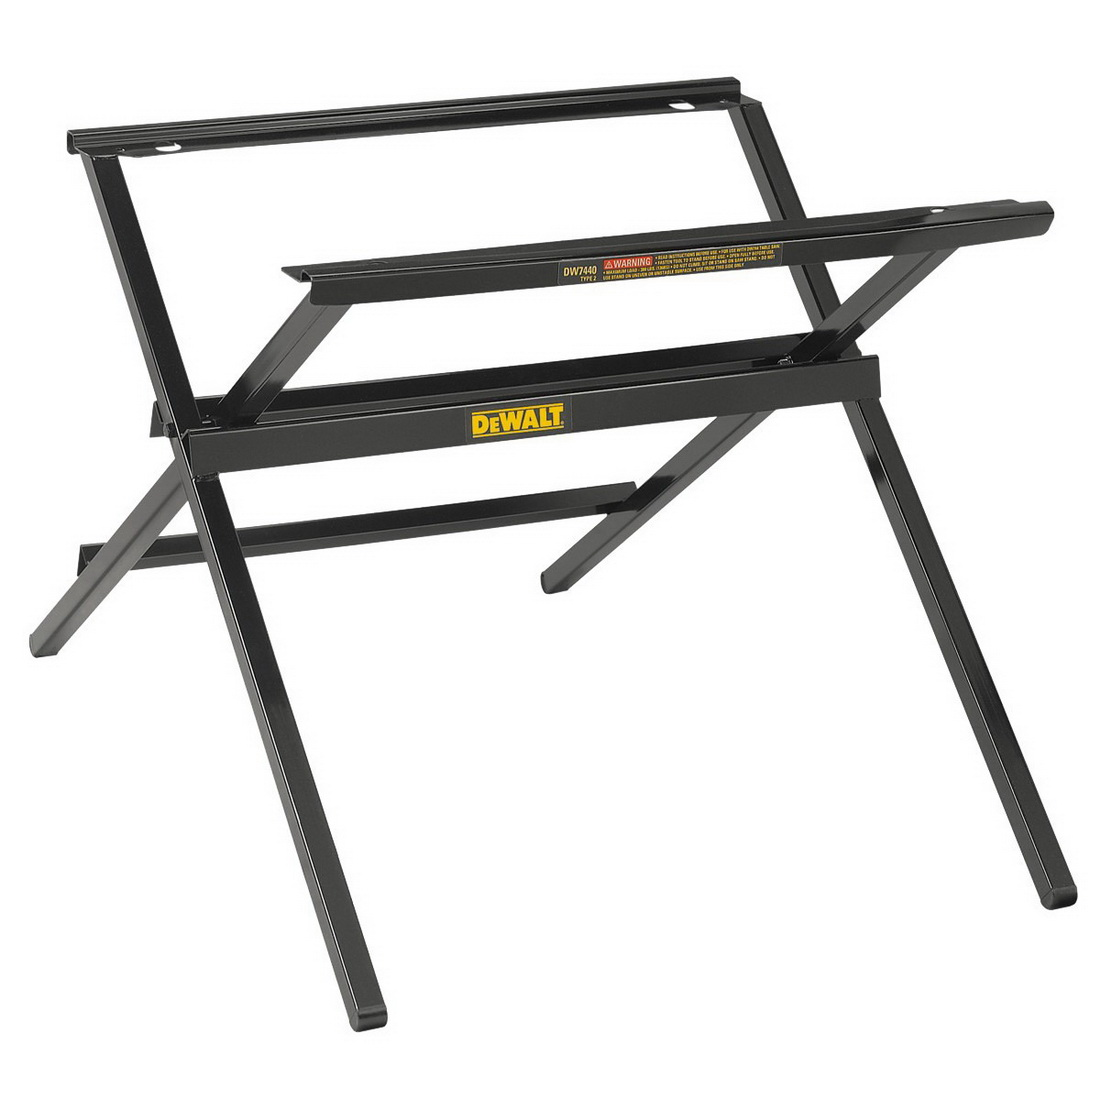 Portable Table Saw Stand For DWE7491 Table Saw